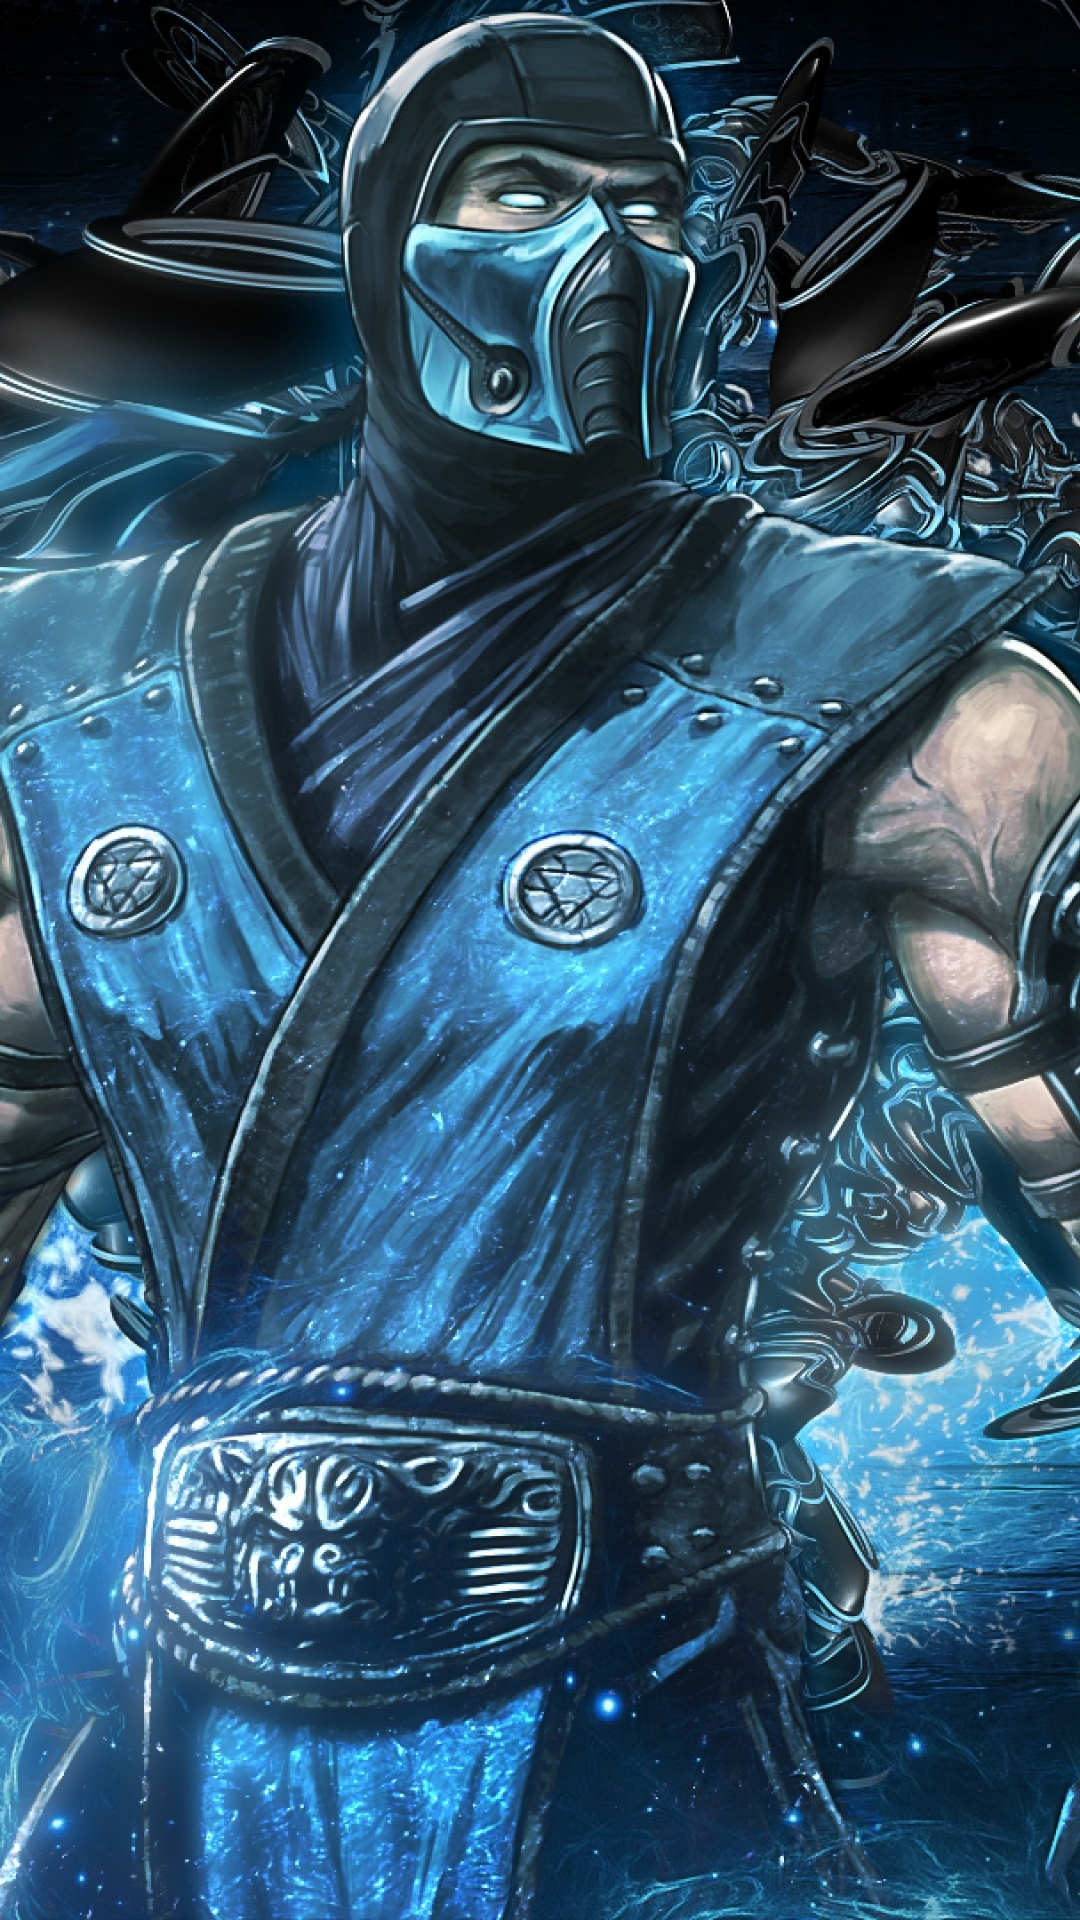 1080x1920-mortal-kombat-sub-zero-art-equipment-wallpaper-wp340620